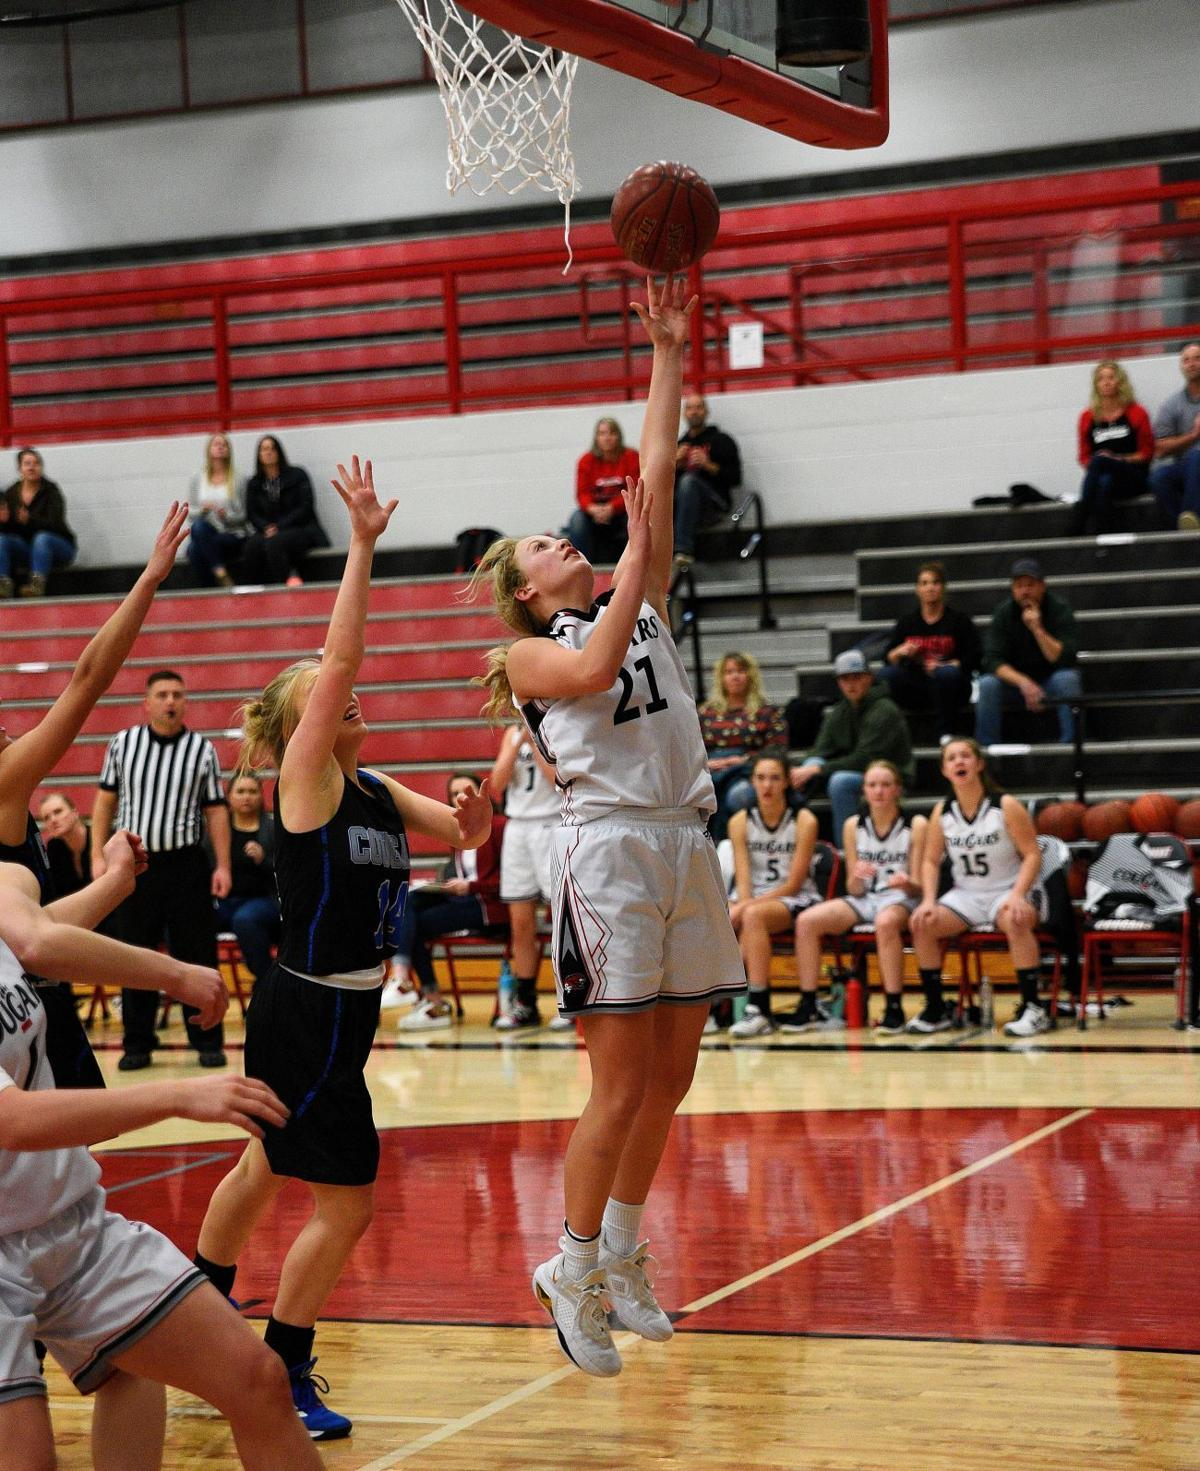 South Fremont's Berklee Yancey lays the ball up off the backboard.